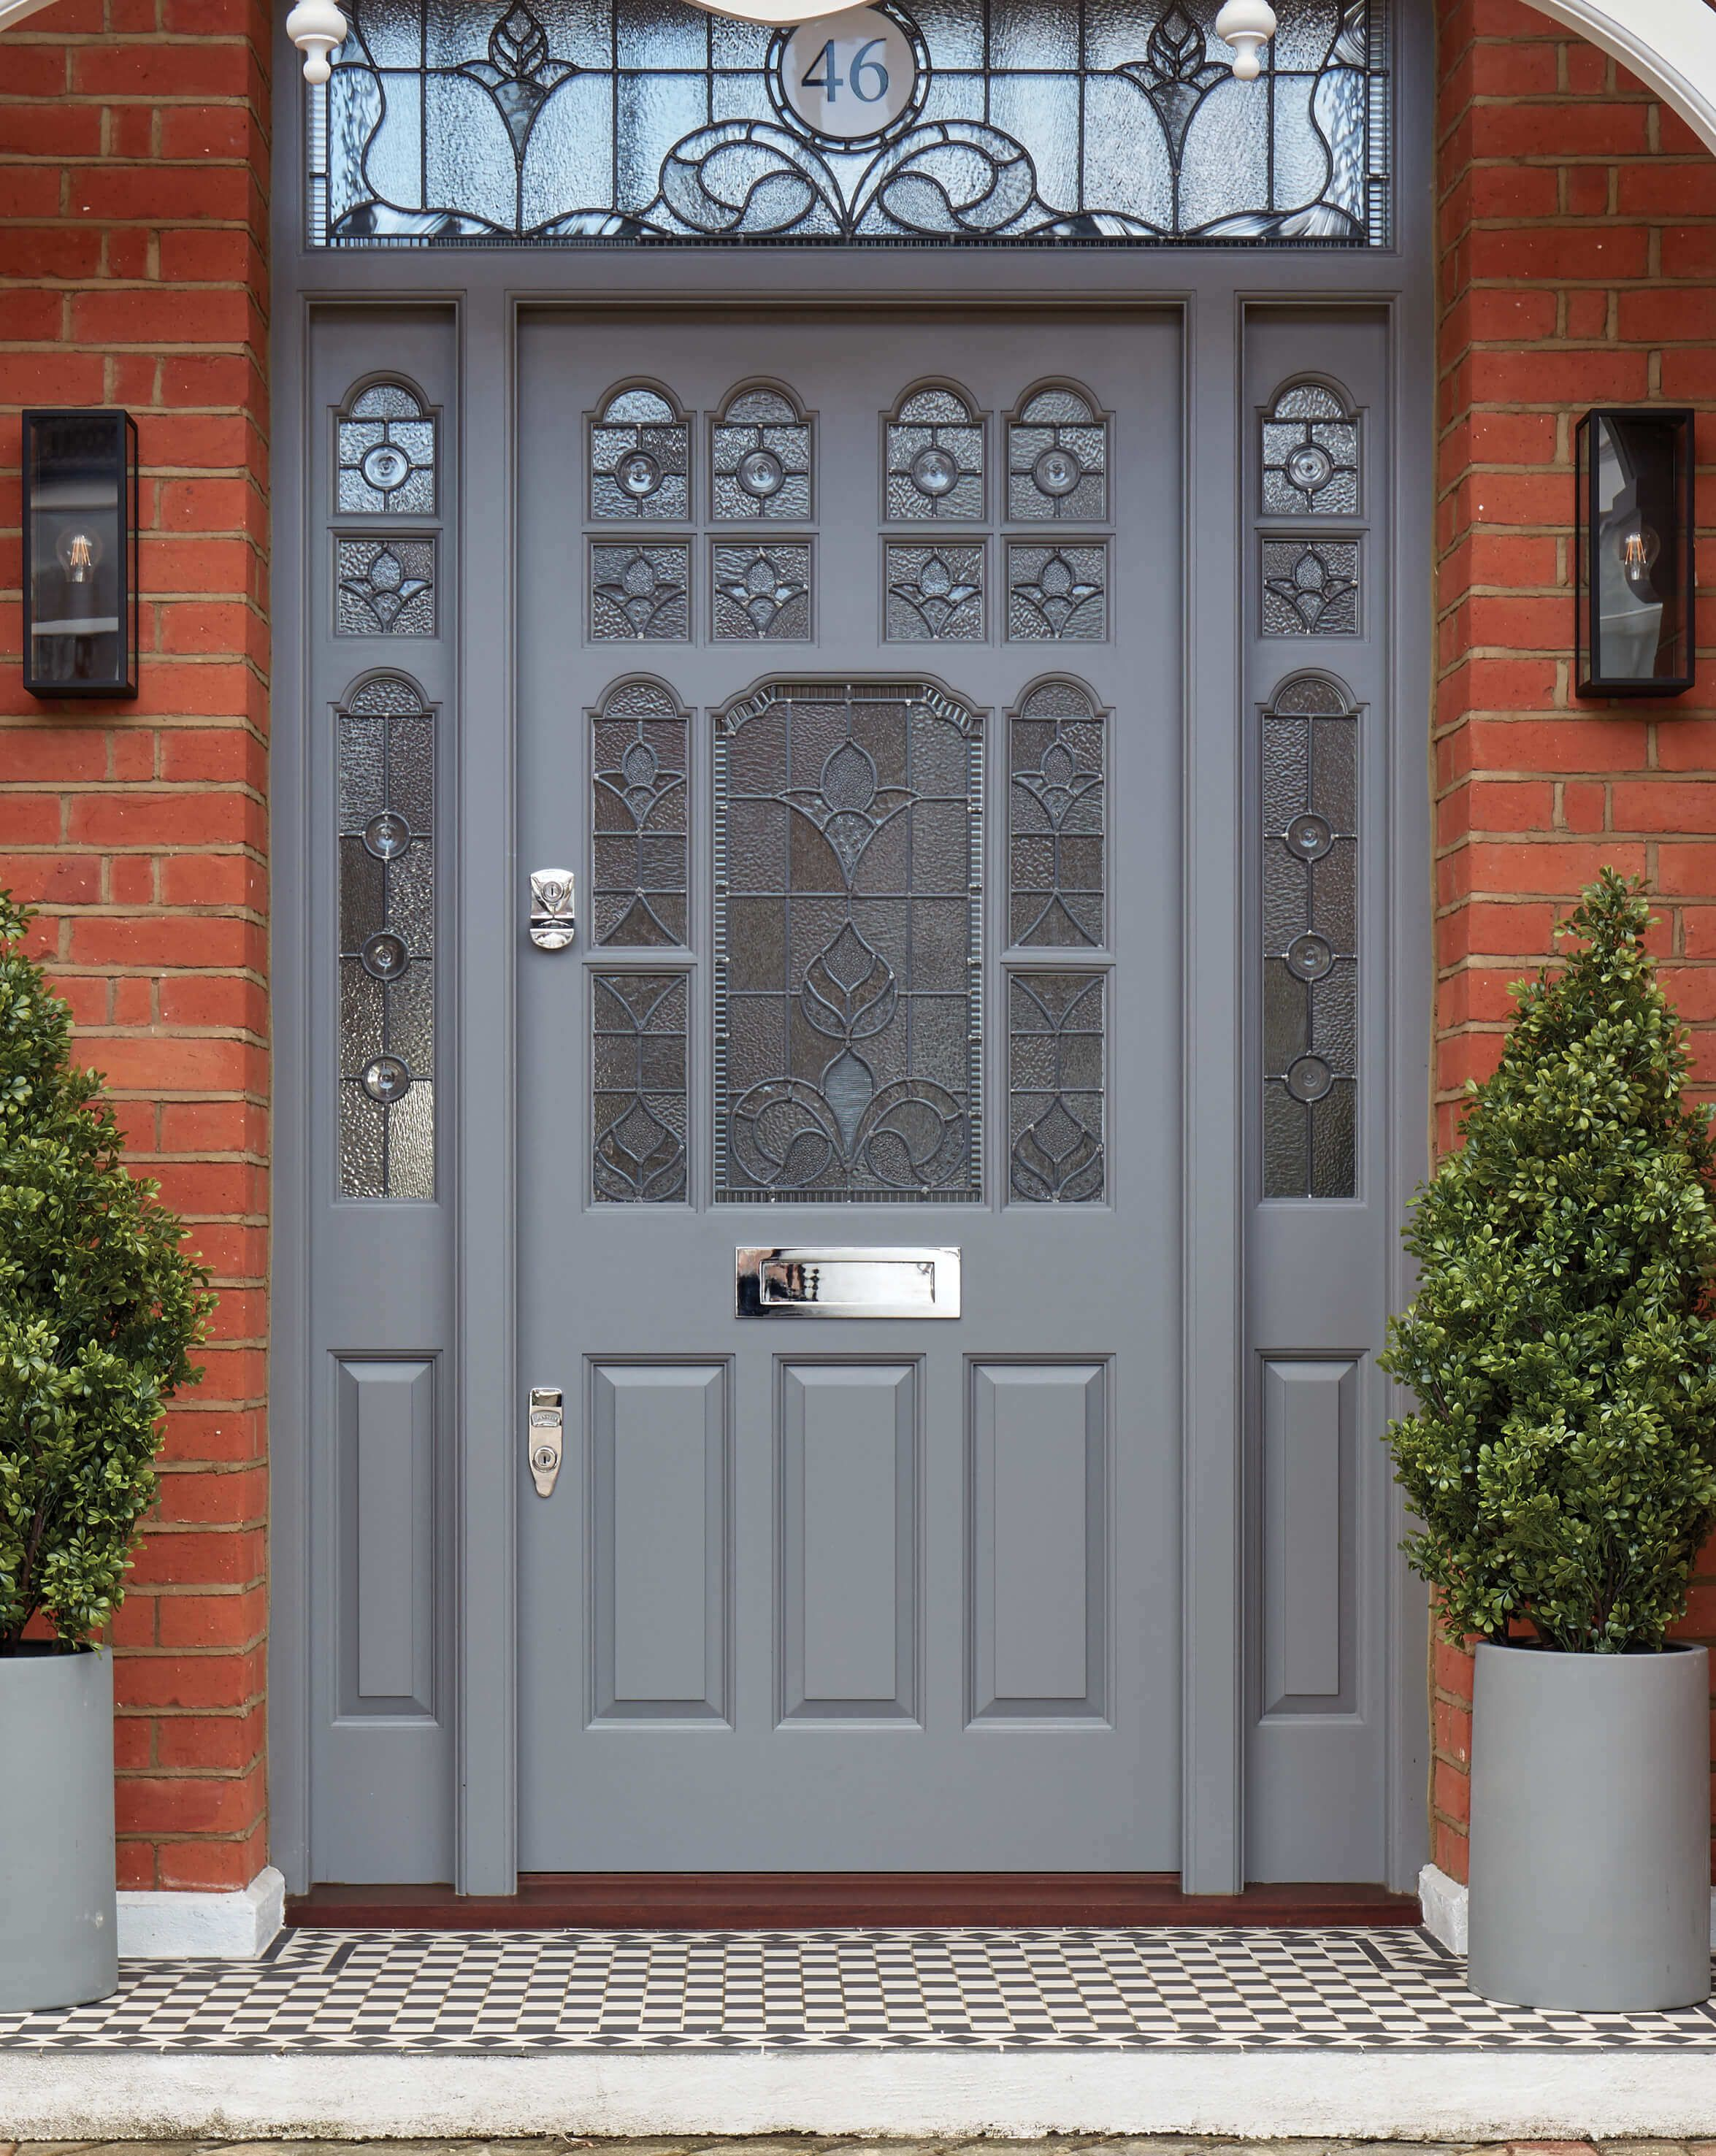 This Imposing Victorian Leadlight Door Is A Beautiful